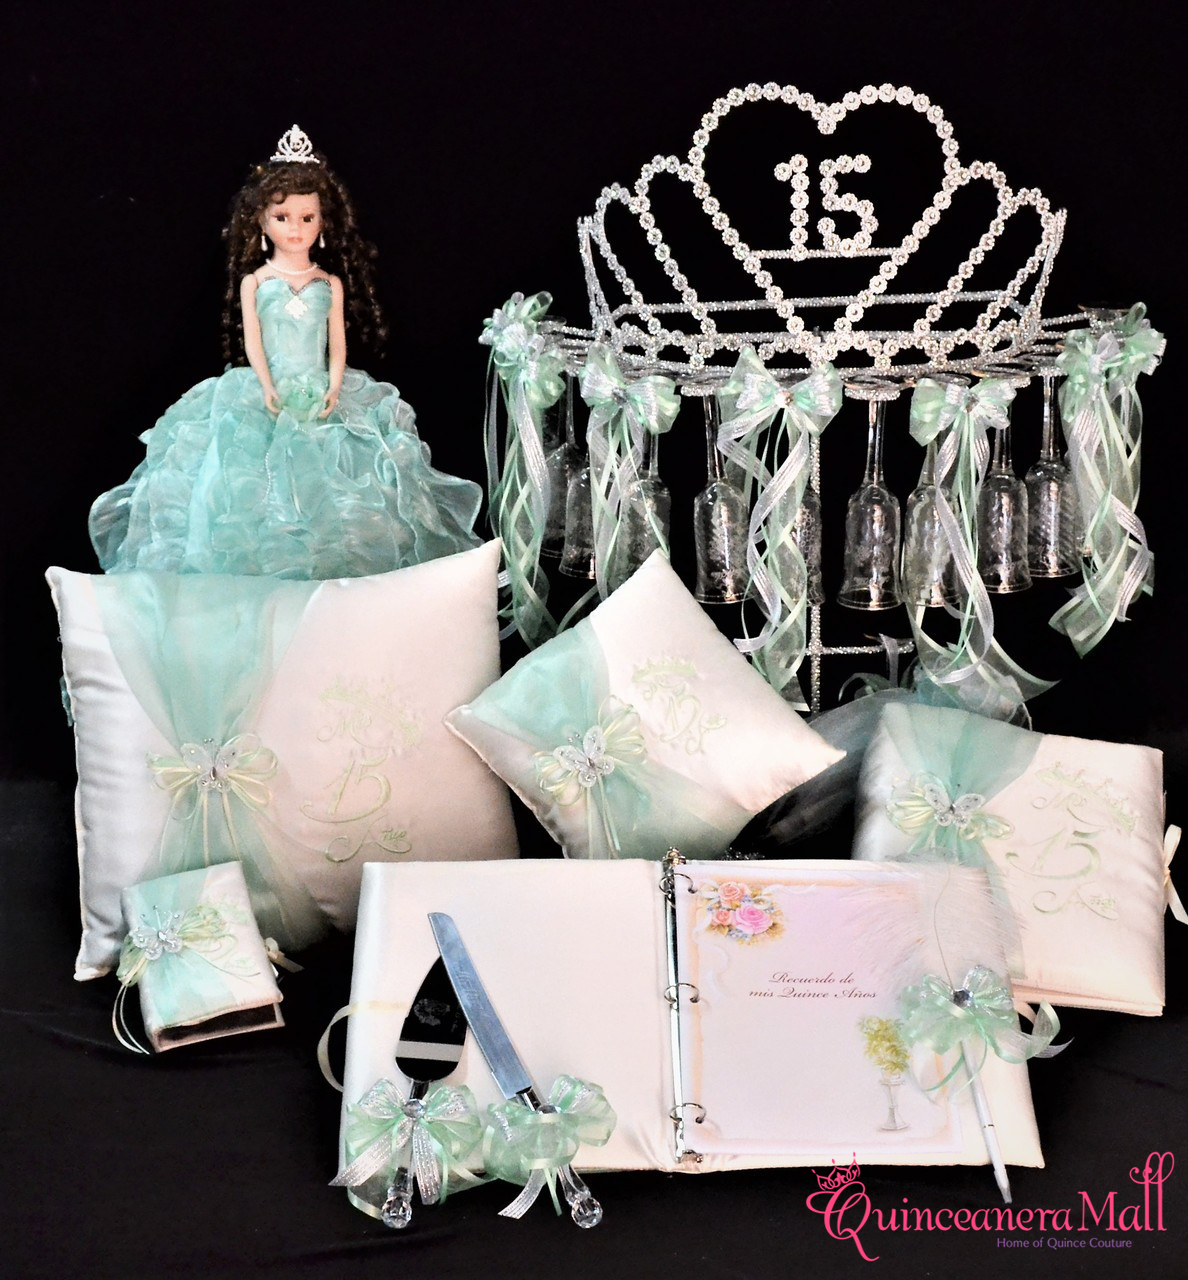 3c6c37e36a Princess Tiara Quinceanera Package Toasting Set, Doll, Pillows, Guest Book,  Album, and Cake Server #QSP155 - Quinceanera Mall